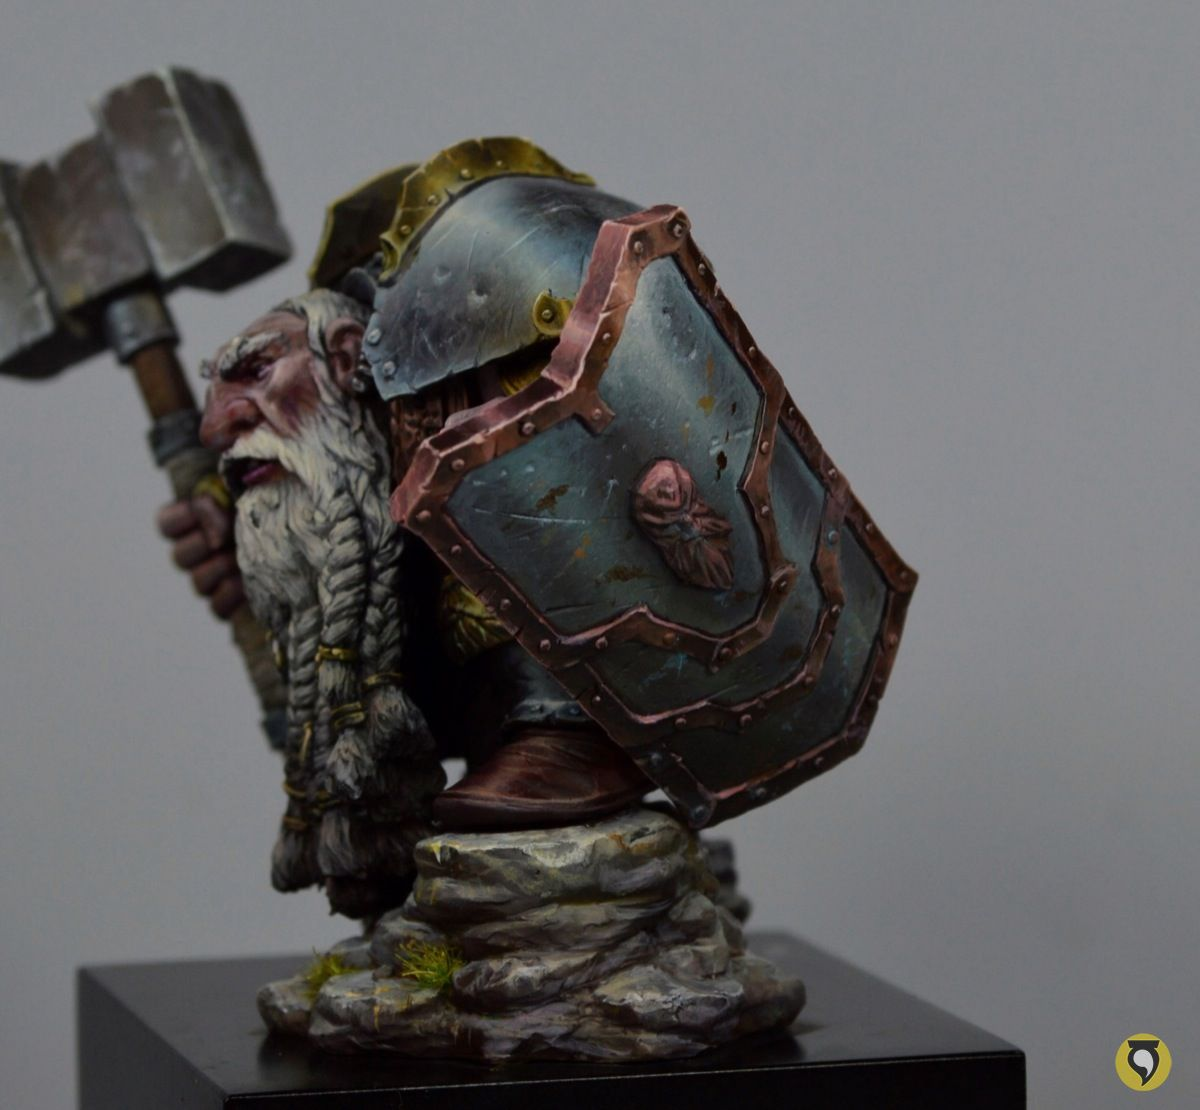 nythgor-marc-masclans-article-tutorial-hera-models-raul-latorre-dwarf-final-05